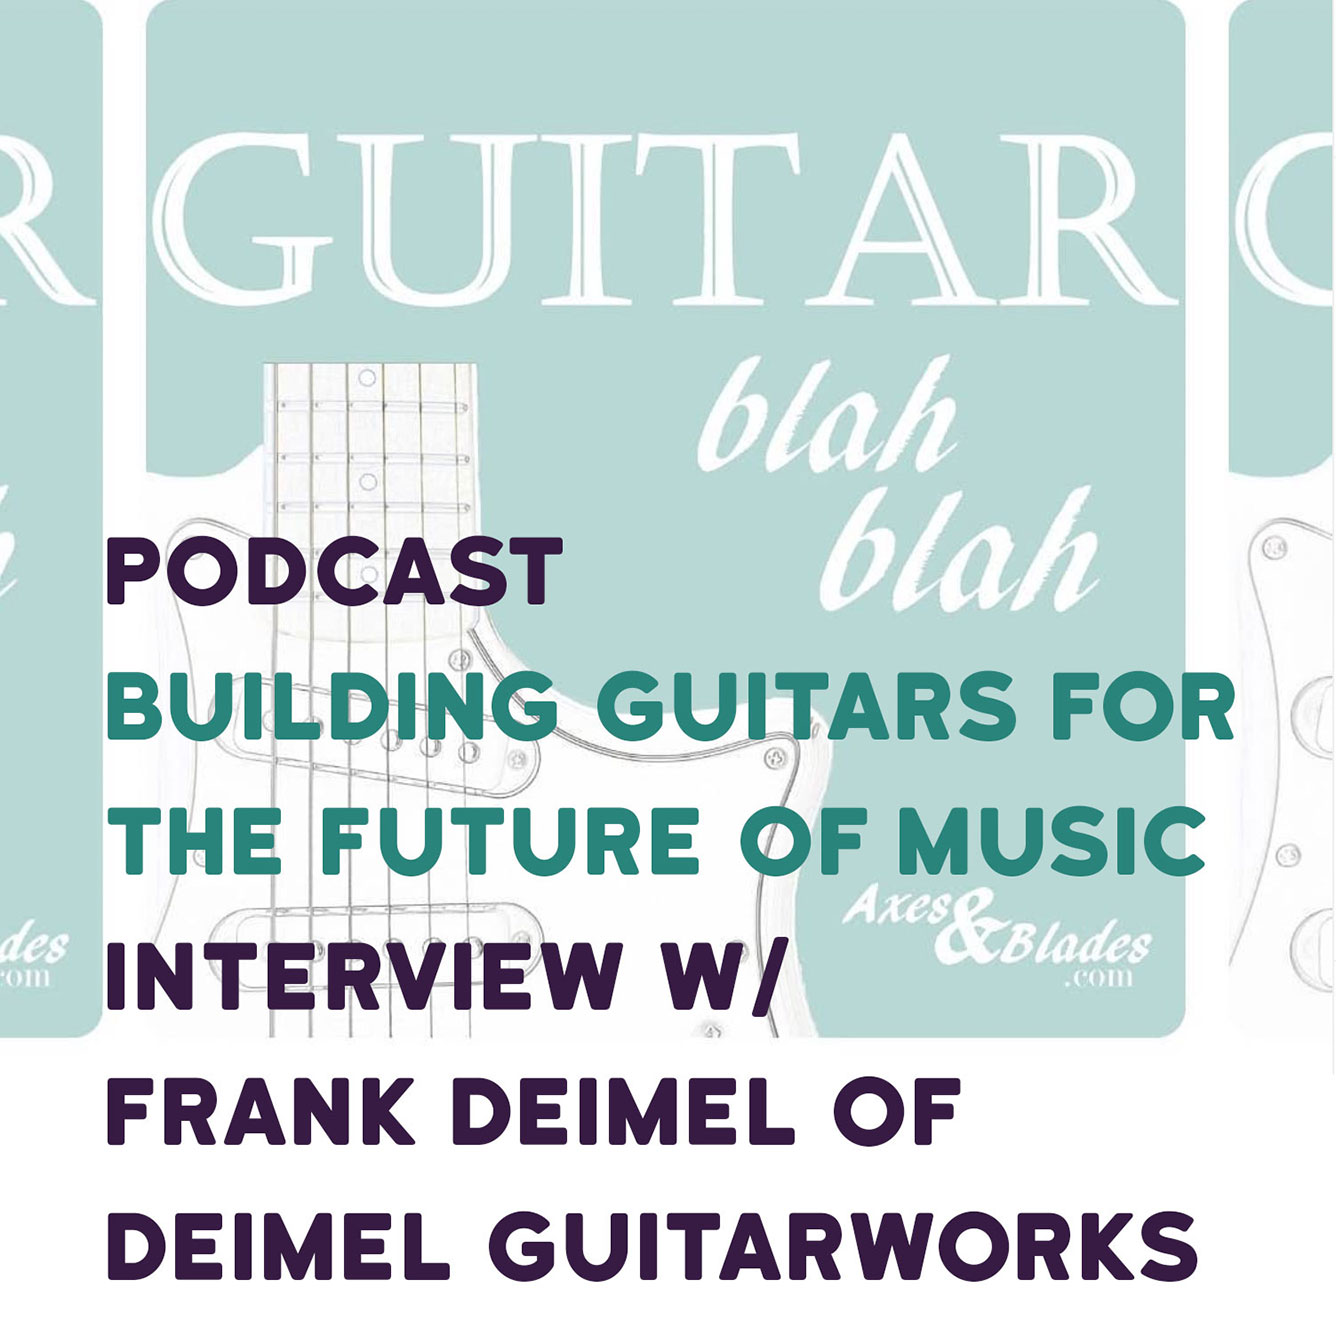 Deimel Guitarworks Podcast